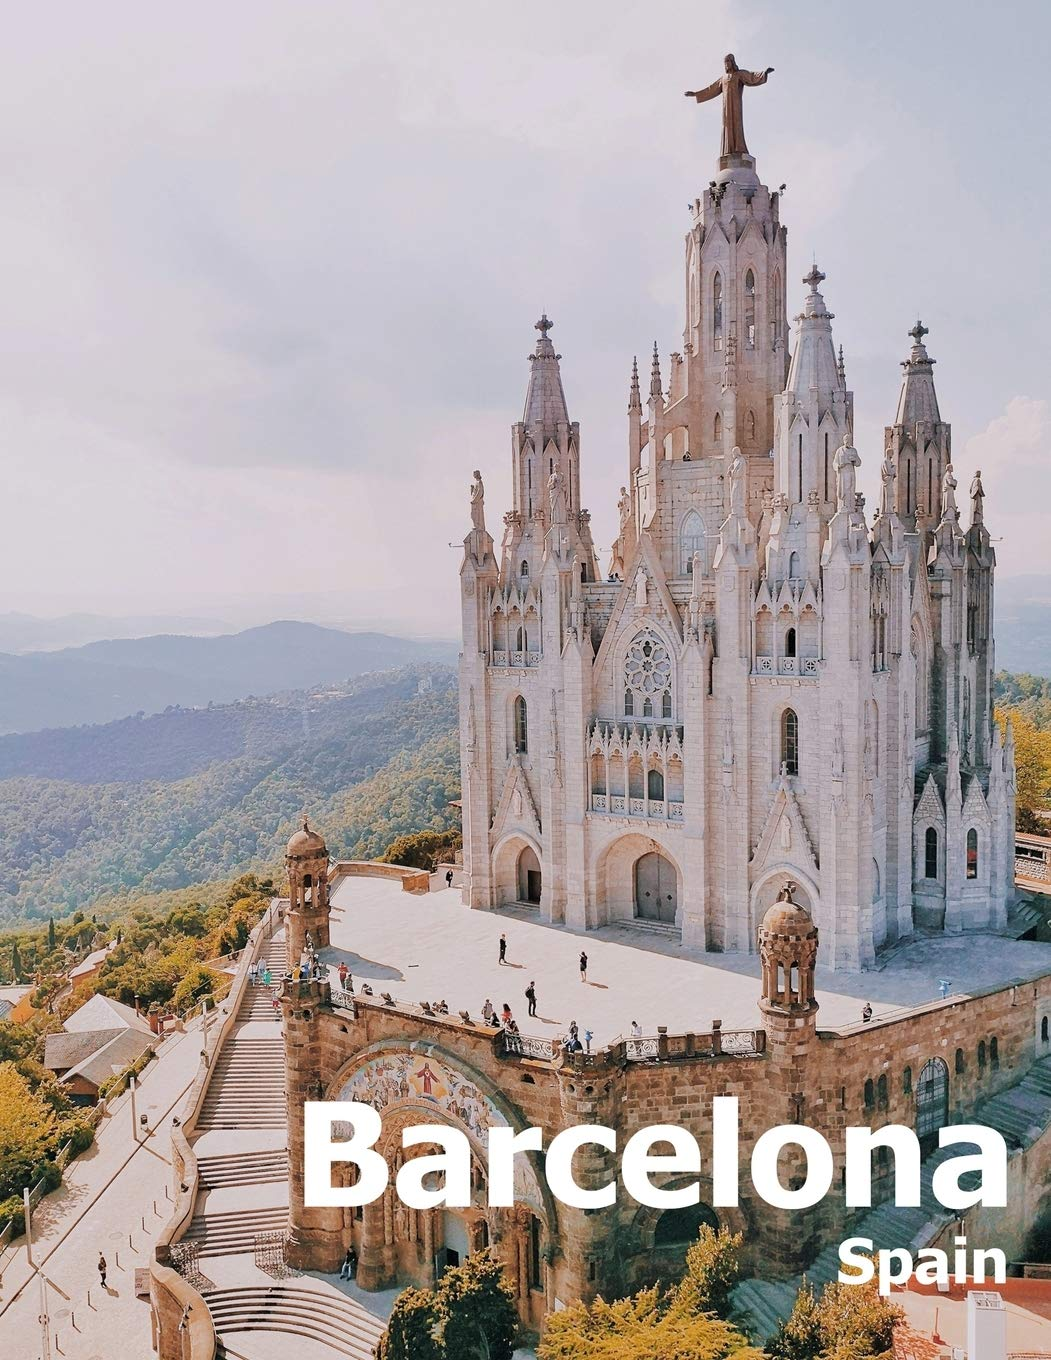 Barcelona Spain Coffee Table Photography Travel Picture Book Album Of A Catalonia Spanish Country And City In Southern Europe Large Size Photos Cover Boman Amelia 9781675590171 Amazon Com Books